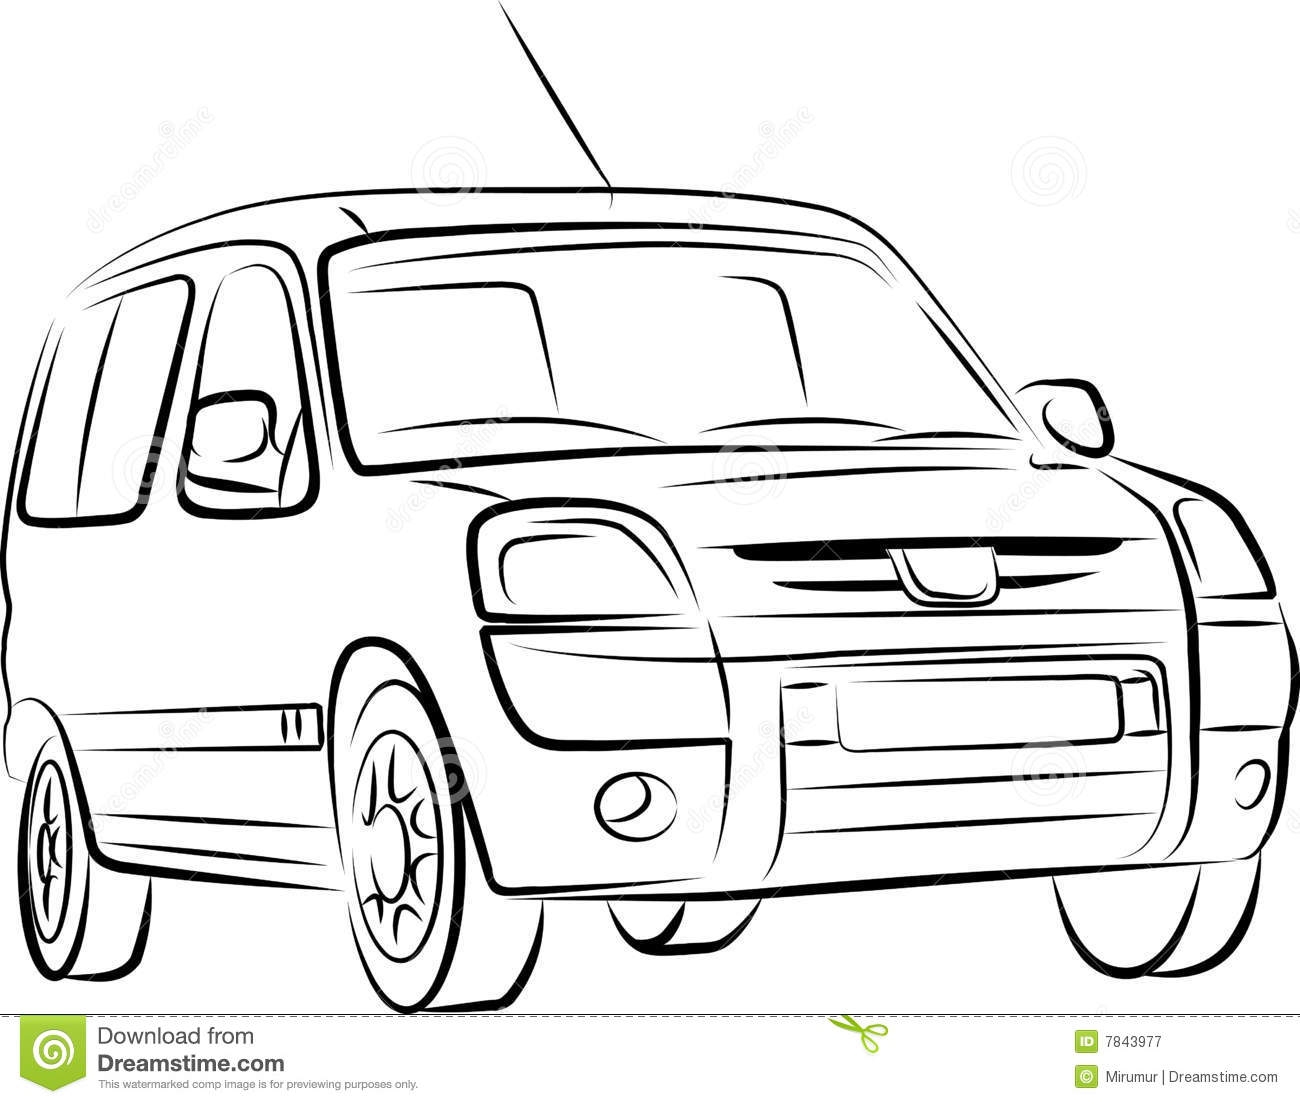 Drawing of the car stock vector. Illustration of auto - 7843977